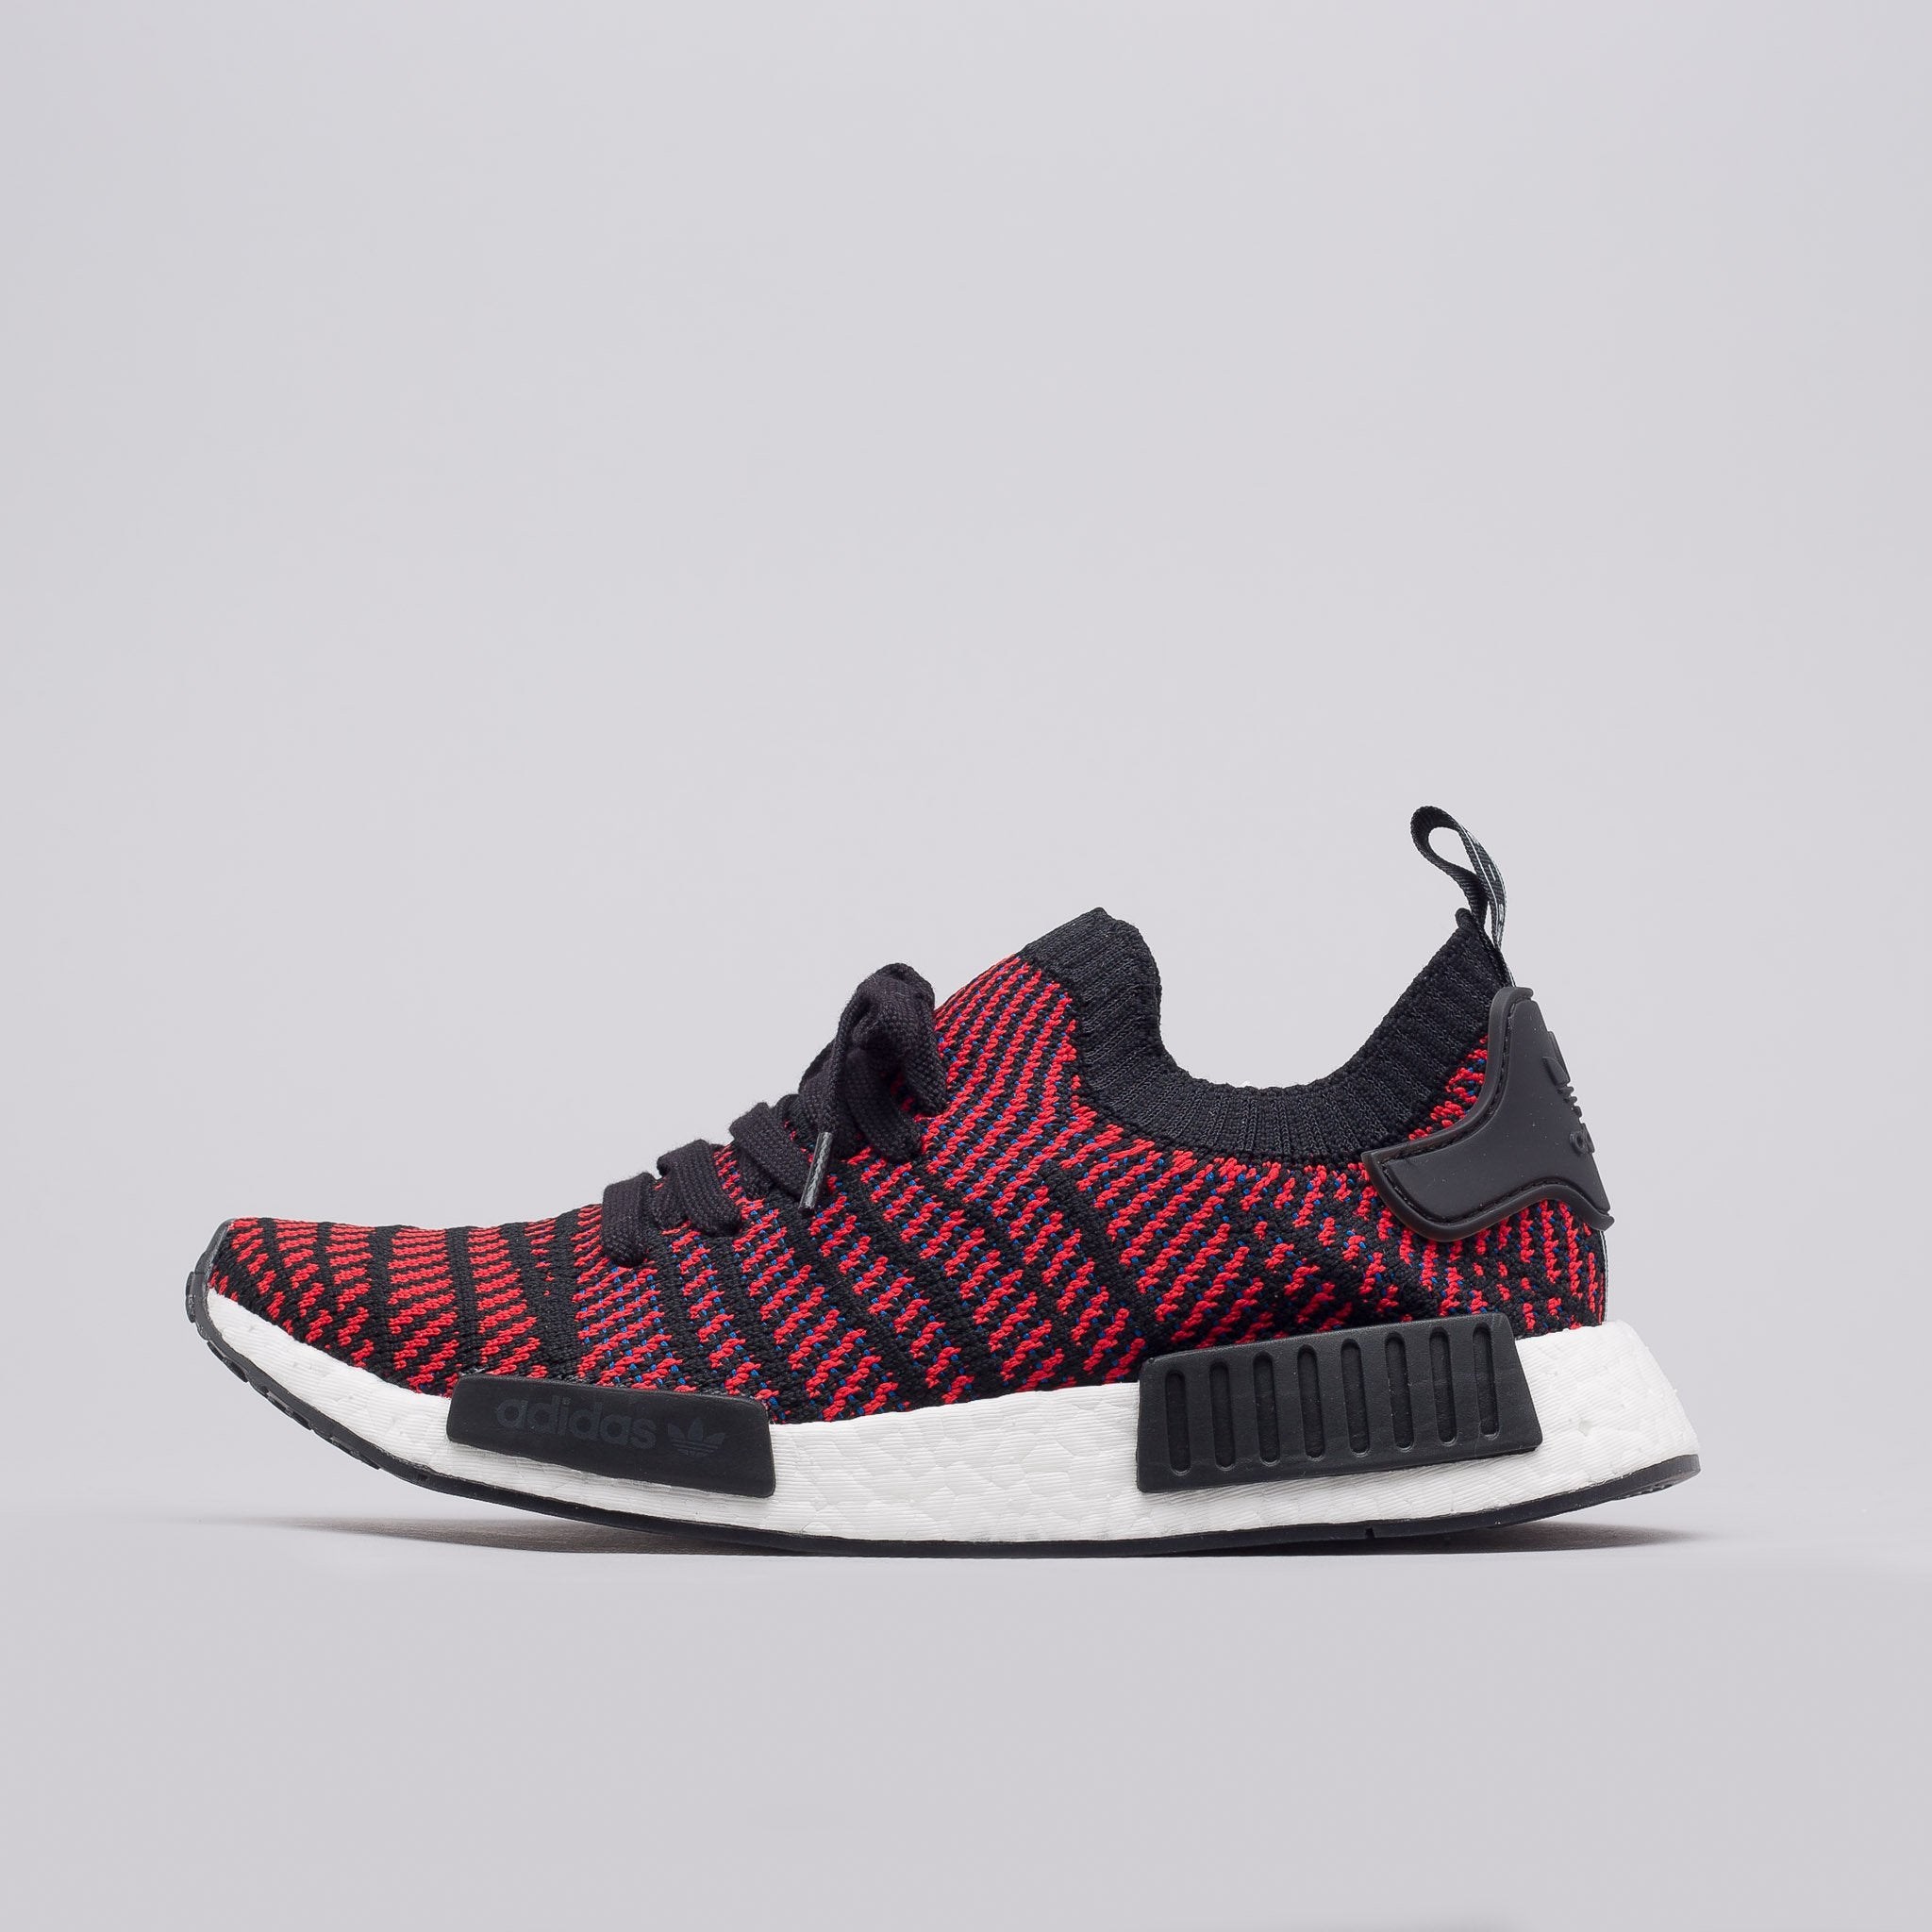 "a5d6f7a7f 2018 New adidas NMD R1 Primeknit STLT ""Core Black"" For Sale"